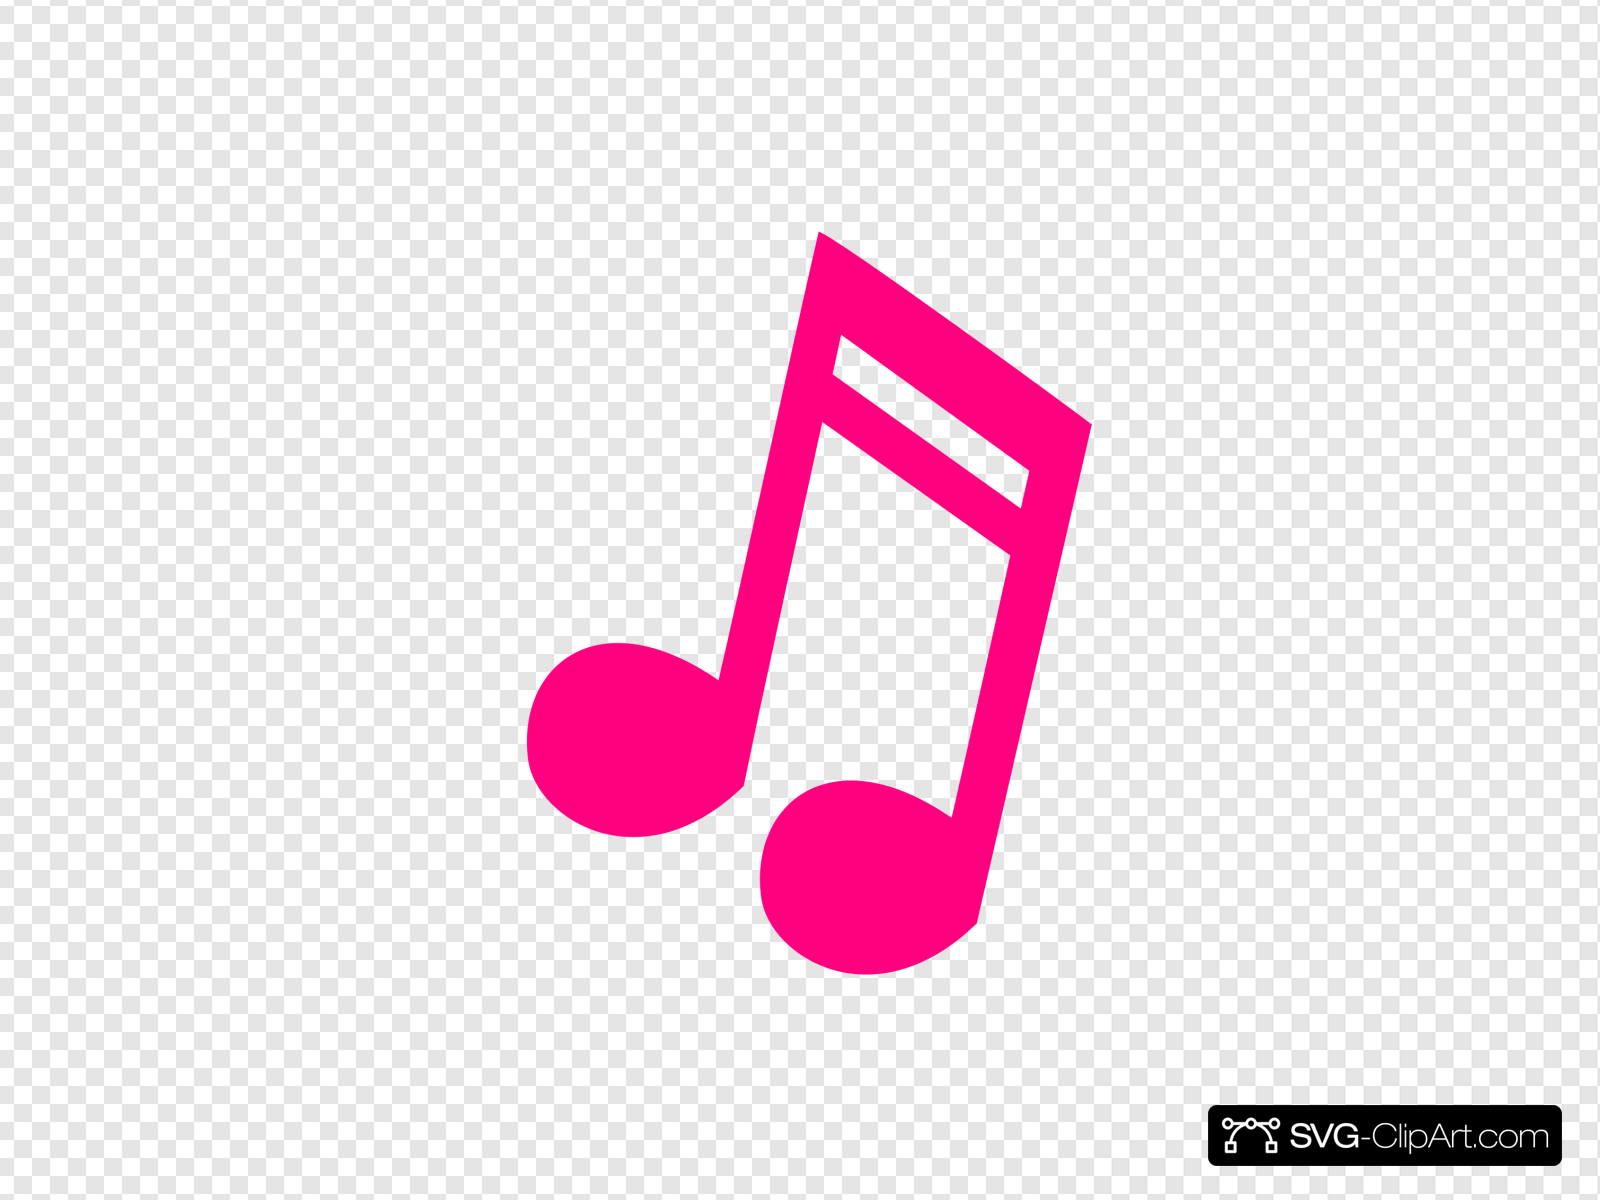 Hot Pink Music Note Clip art, Icon and SVG.